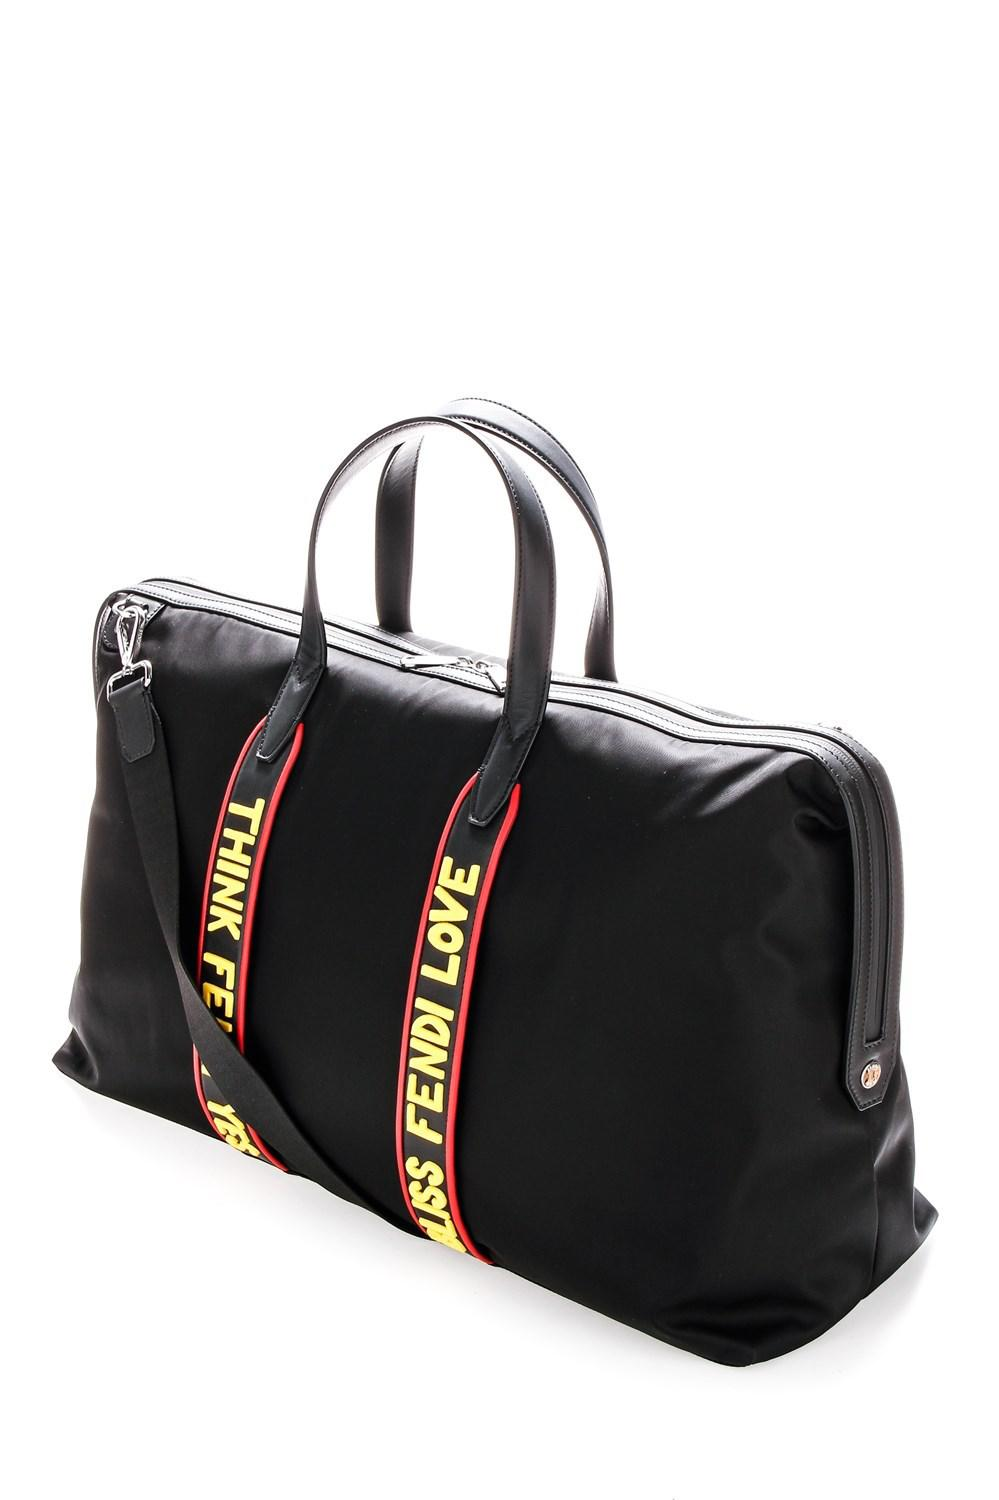 d3a54b4d3564 Lyst - Fendi Leather And Nylon Travel Bag in Black